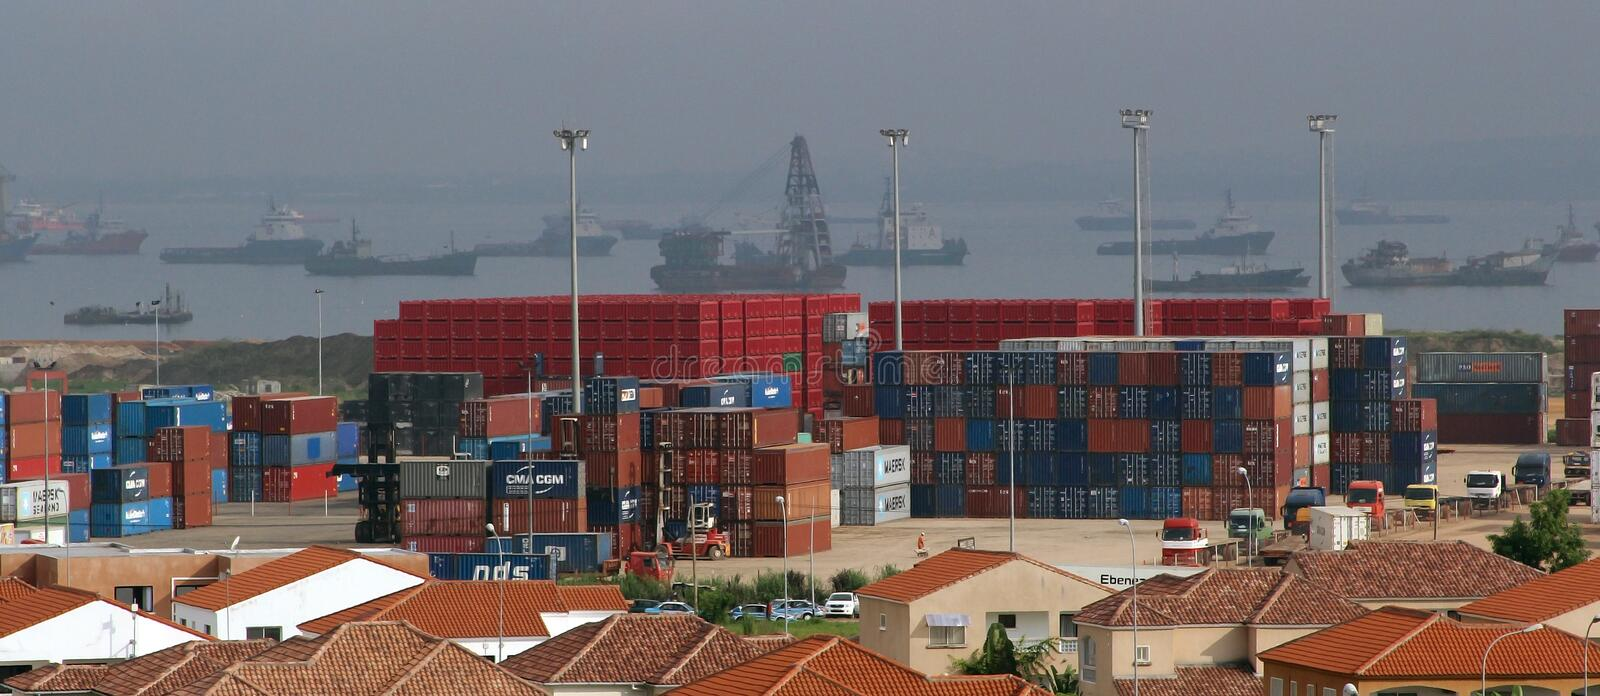 Port of Pointe-Noire. View of the port facility with containers in Pointe-Noire, Congo Republic, february 2015 royalty free stock image